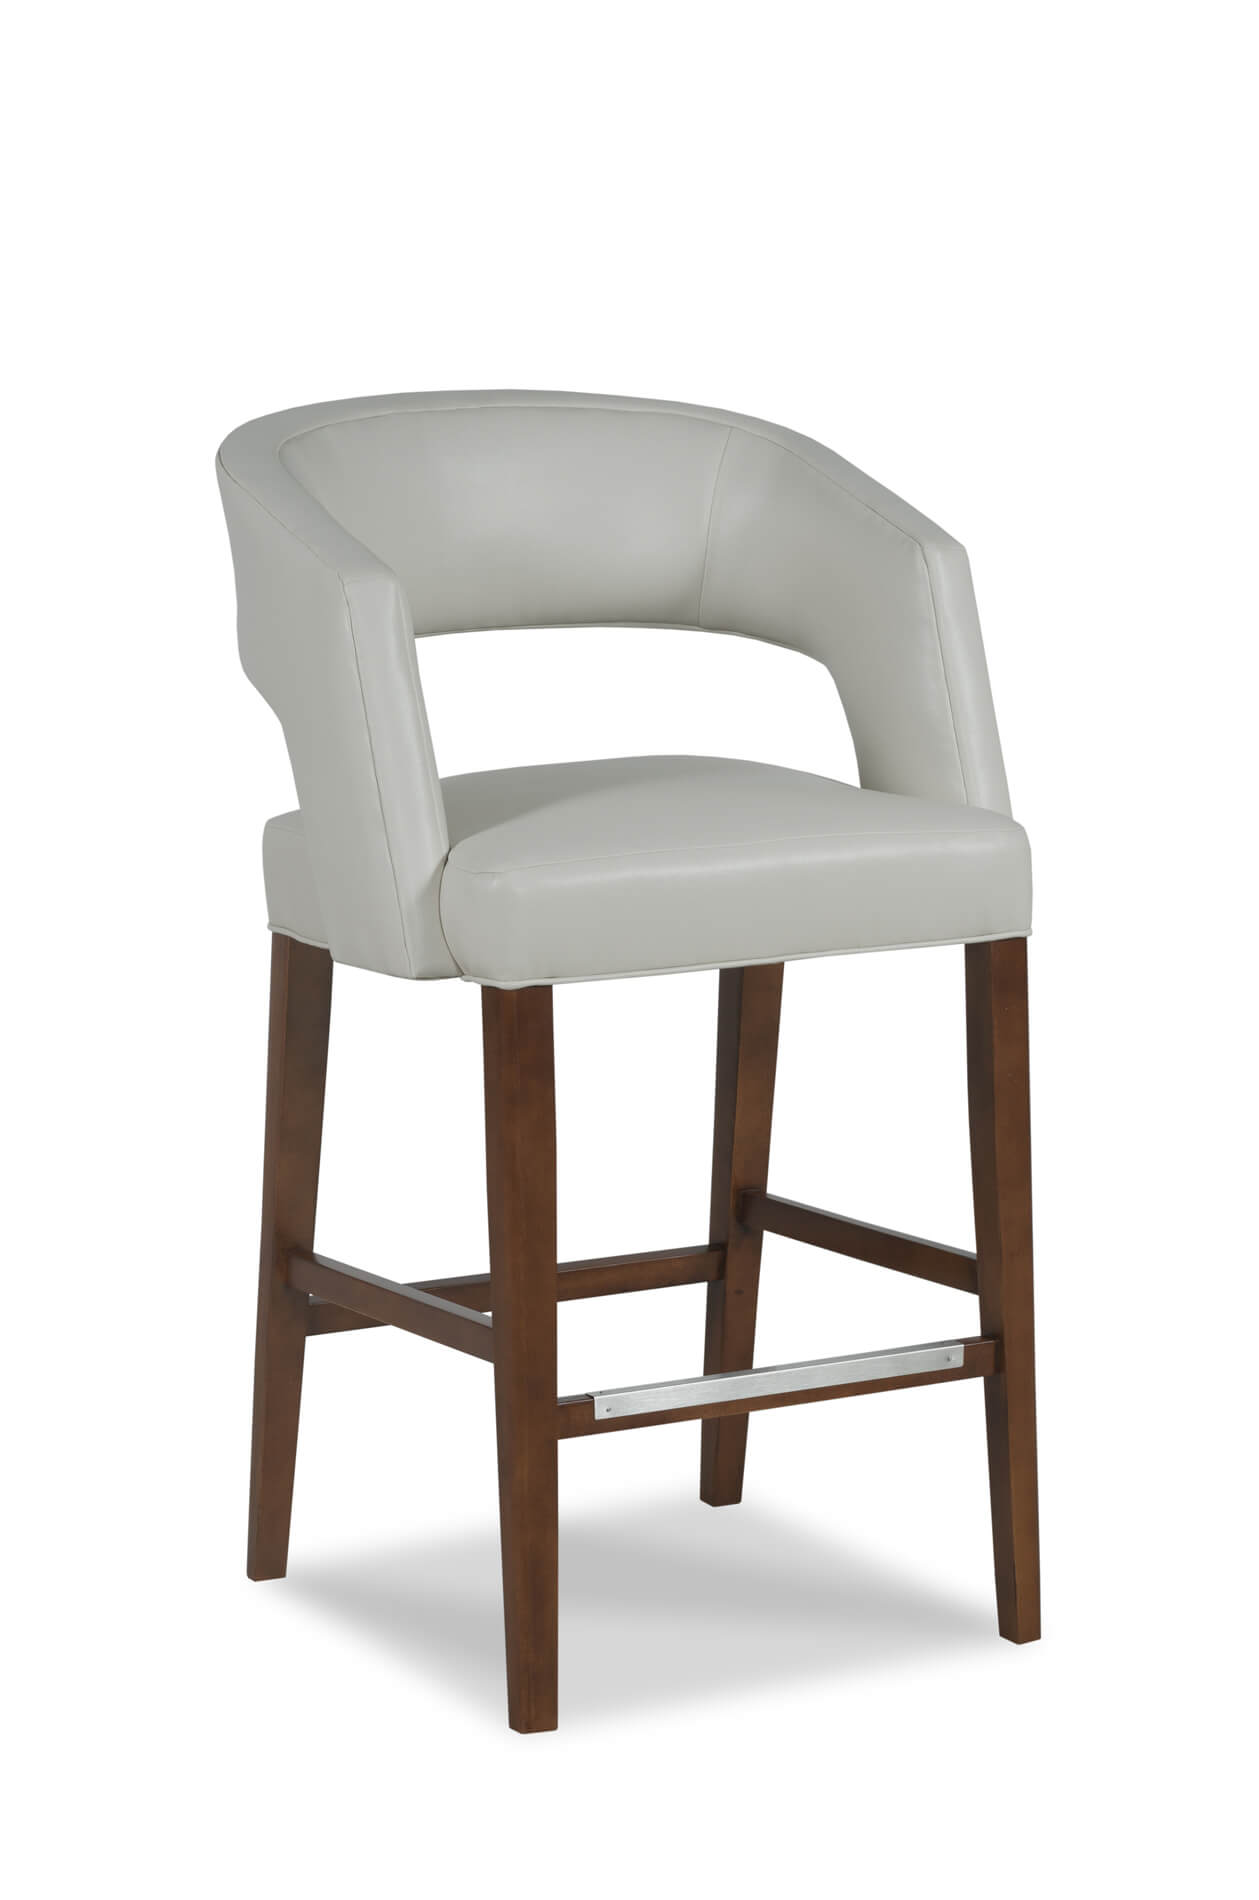 Wood Bar Chairs Bryant Wooden Stool With Arms